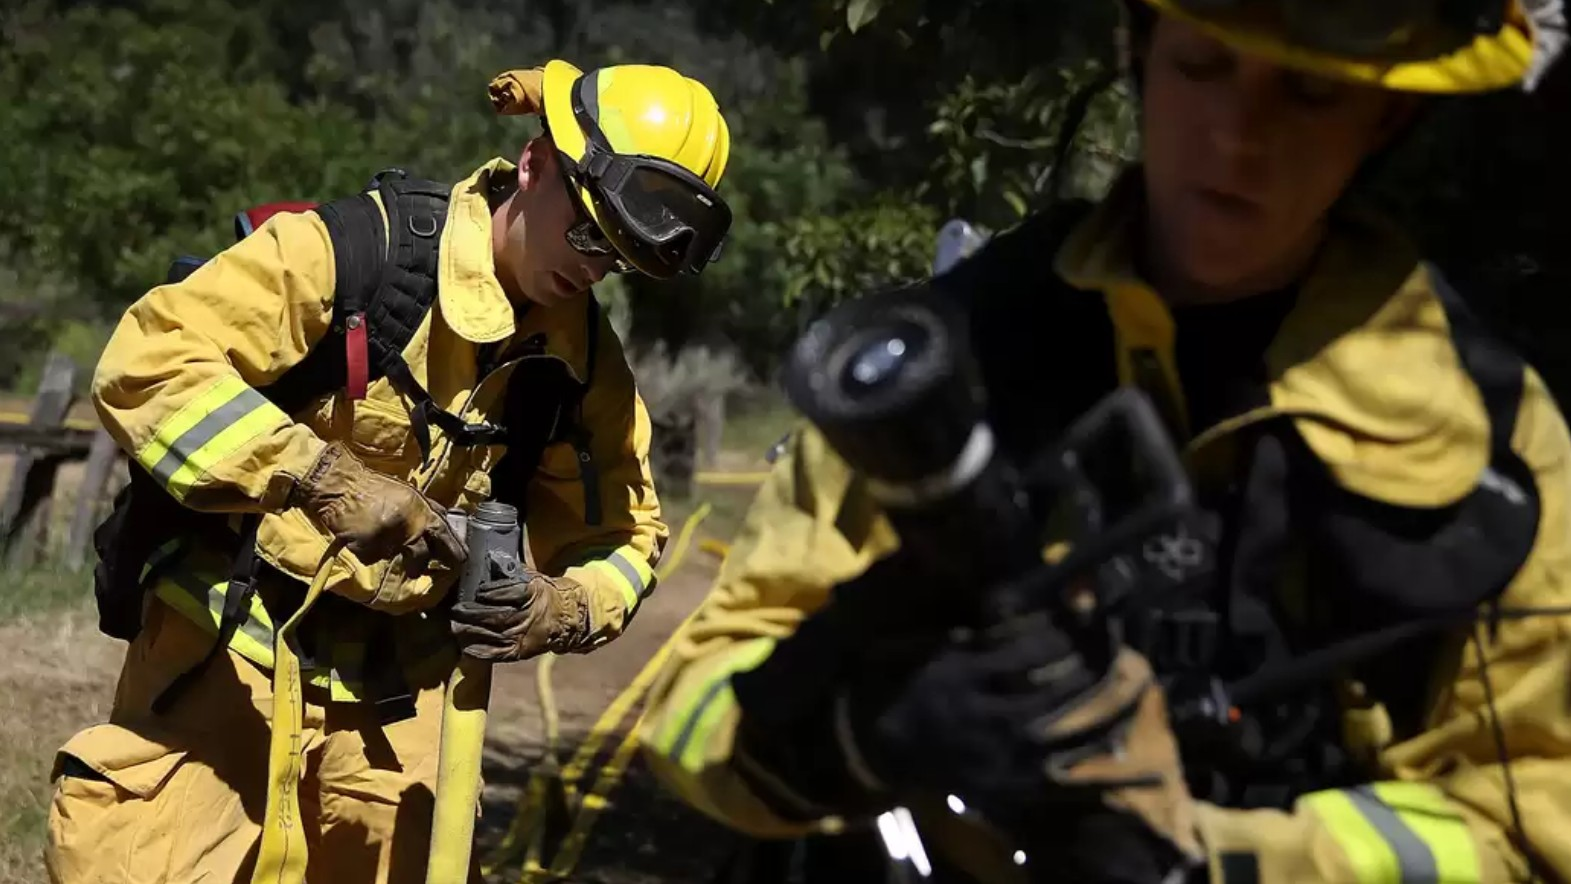 Pissed Off by Verizon, Firefighters Join the Fight to Restore Net Neutrality – First responders join a chorus of angry Americans tired of big telecom's nonsense.